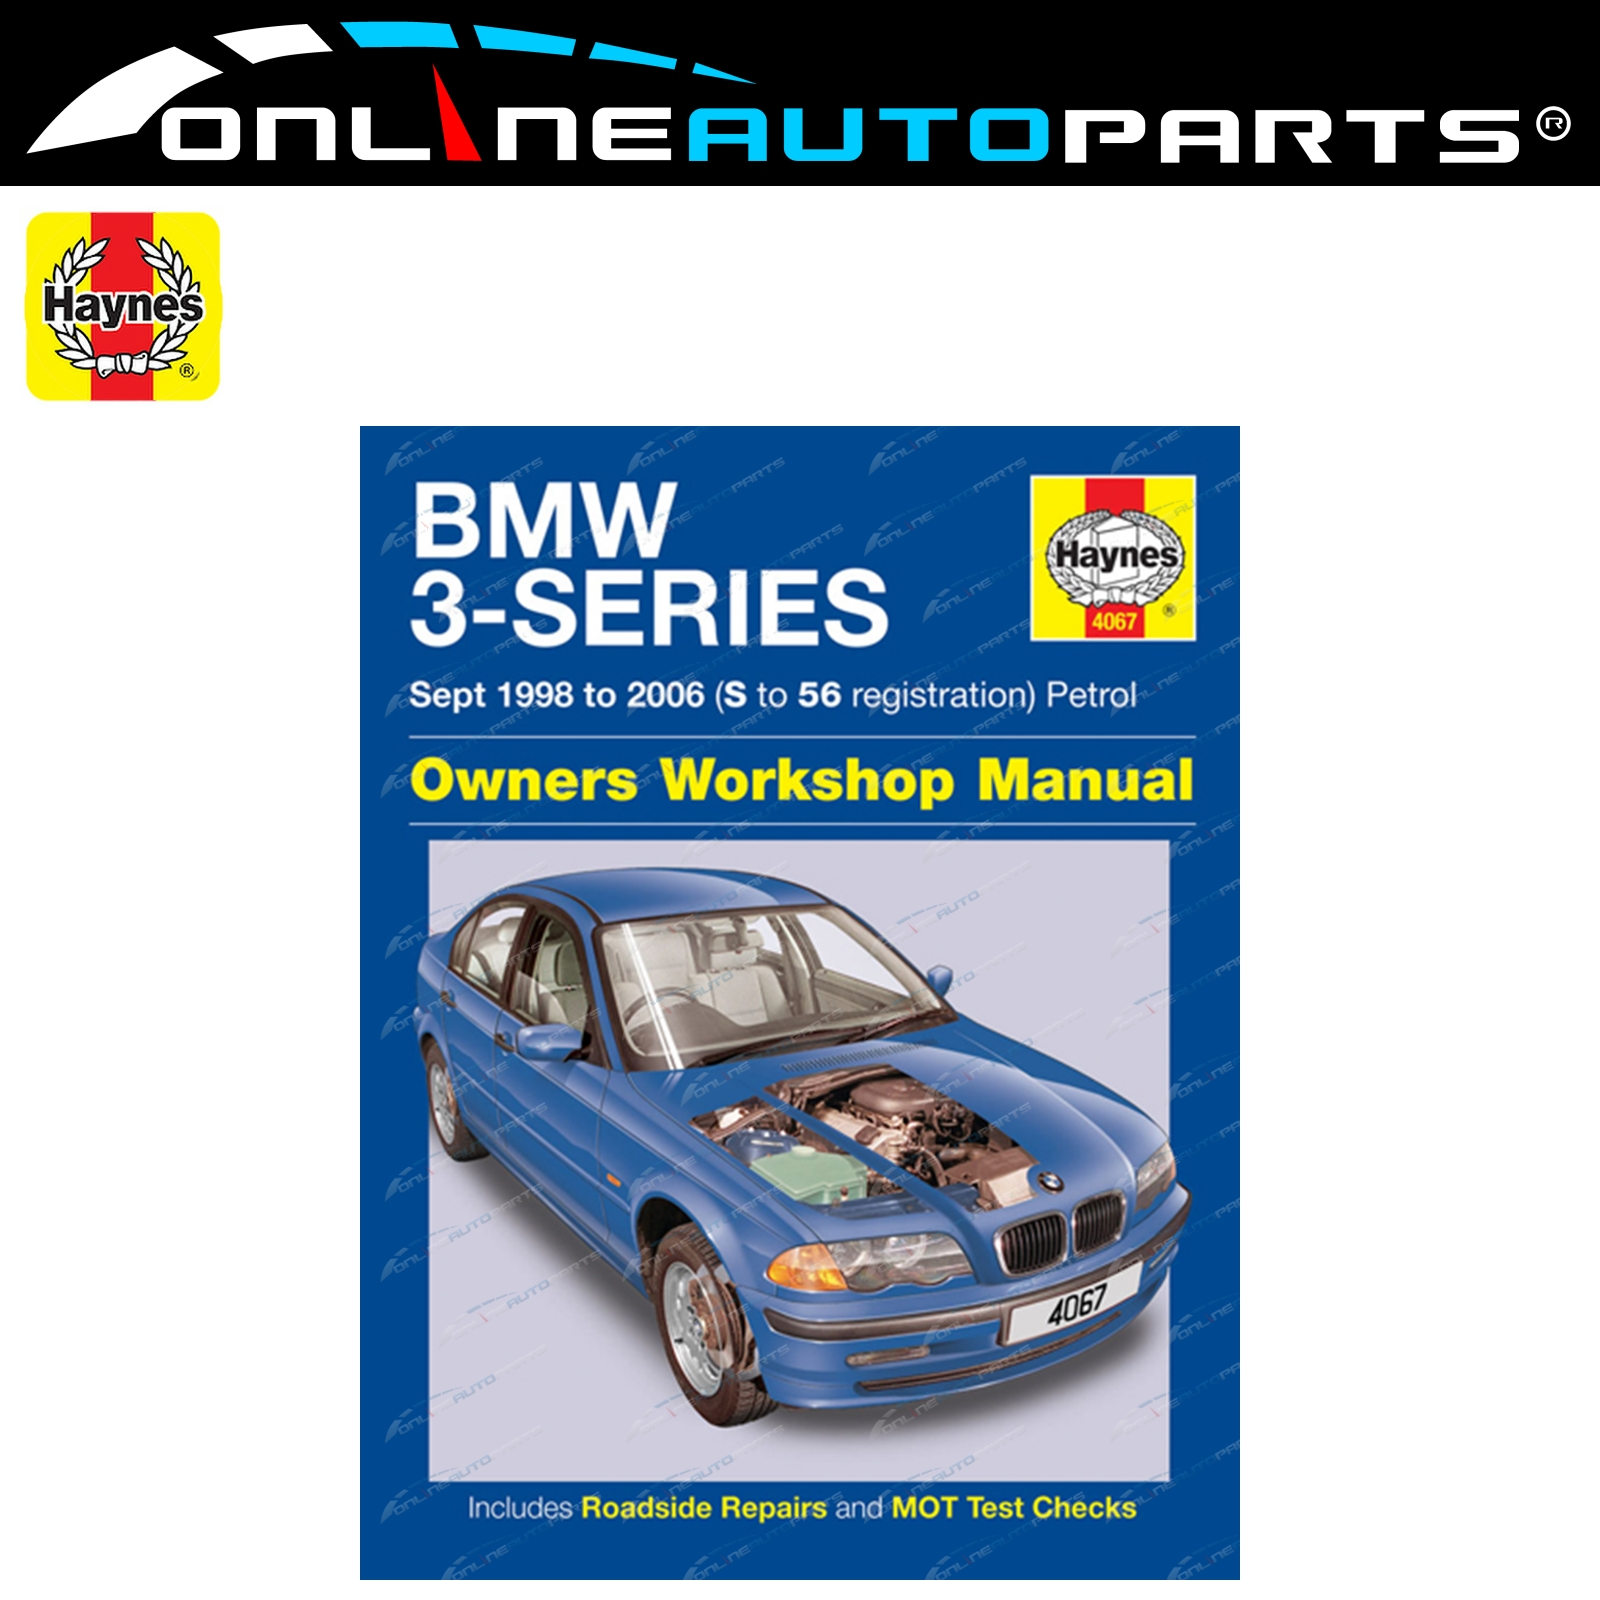 Haynes Car Repair Manual Book BMW E46 1998-06 316i 318i 320i 323i 325i 328i